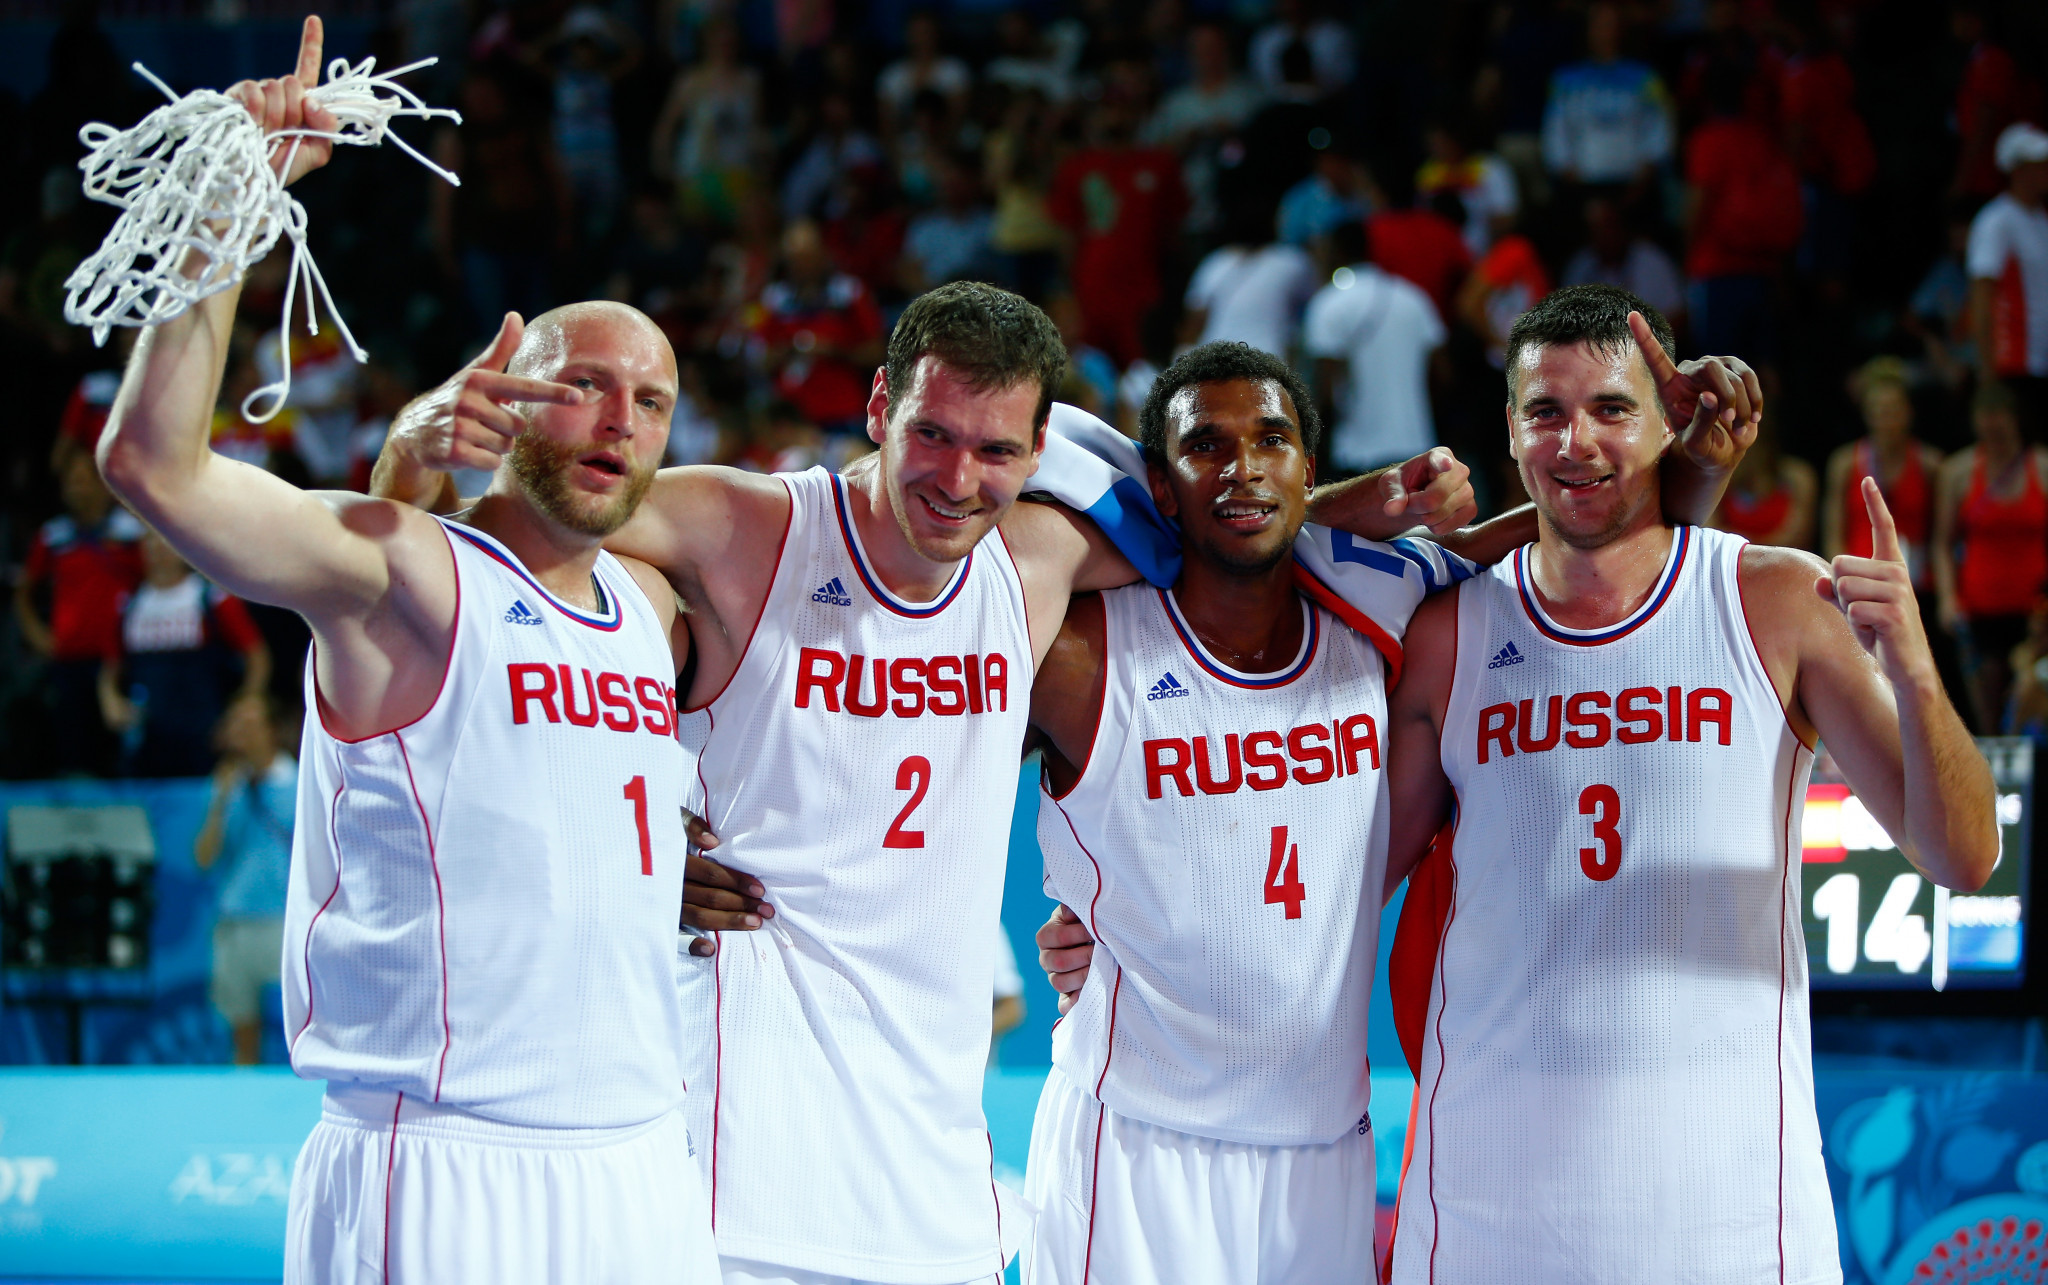 Defending champions Russia impress in 3x3 basketball as Minsk 2019 sporting action begins